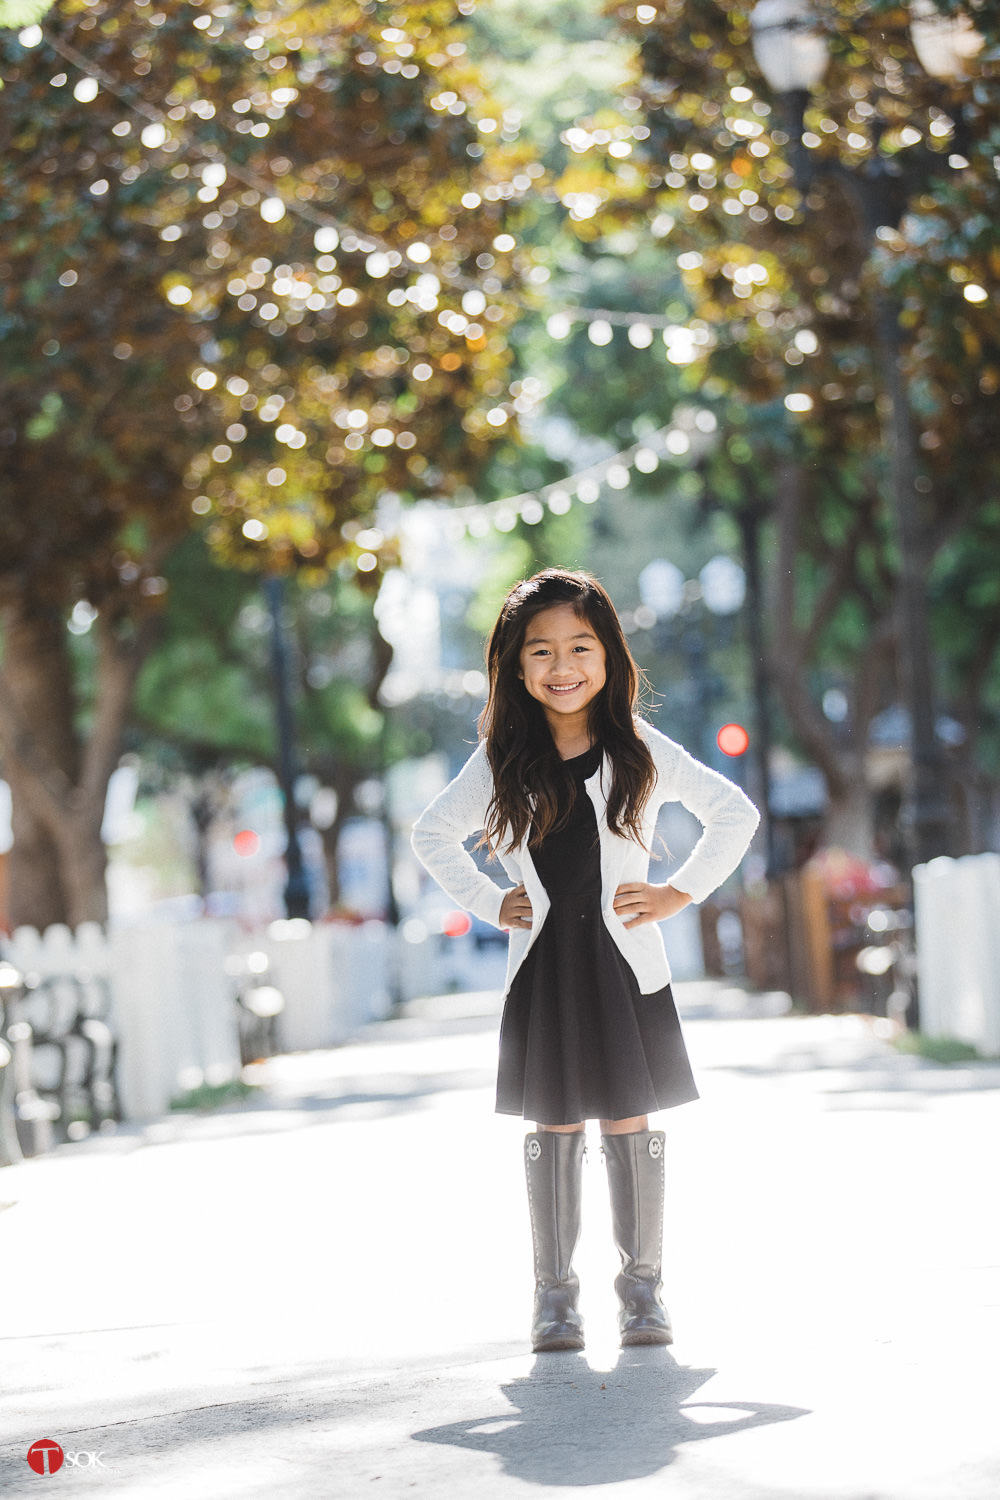 taylor-family-photoshoot-downtown-san-jose-8.jpg